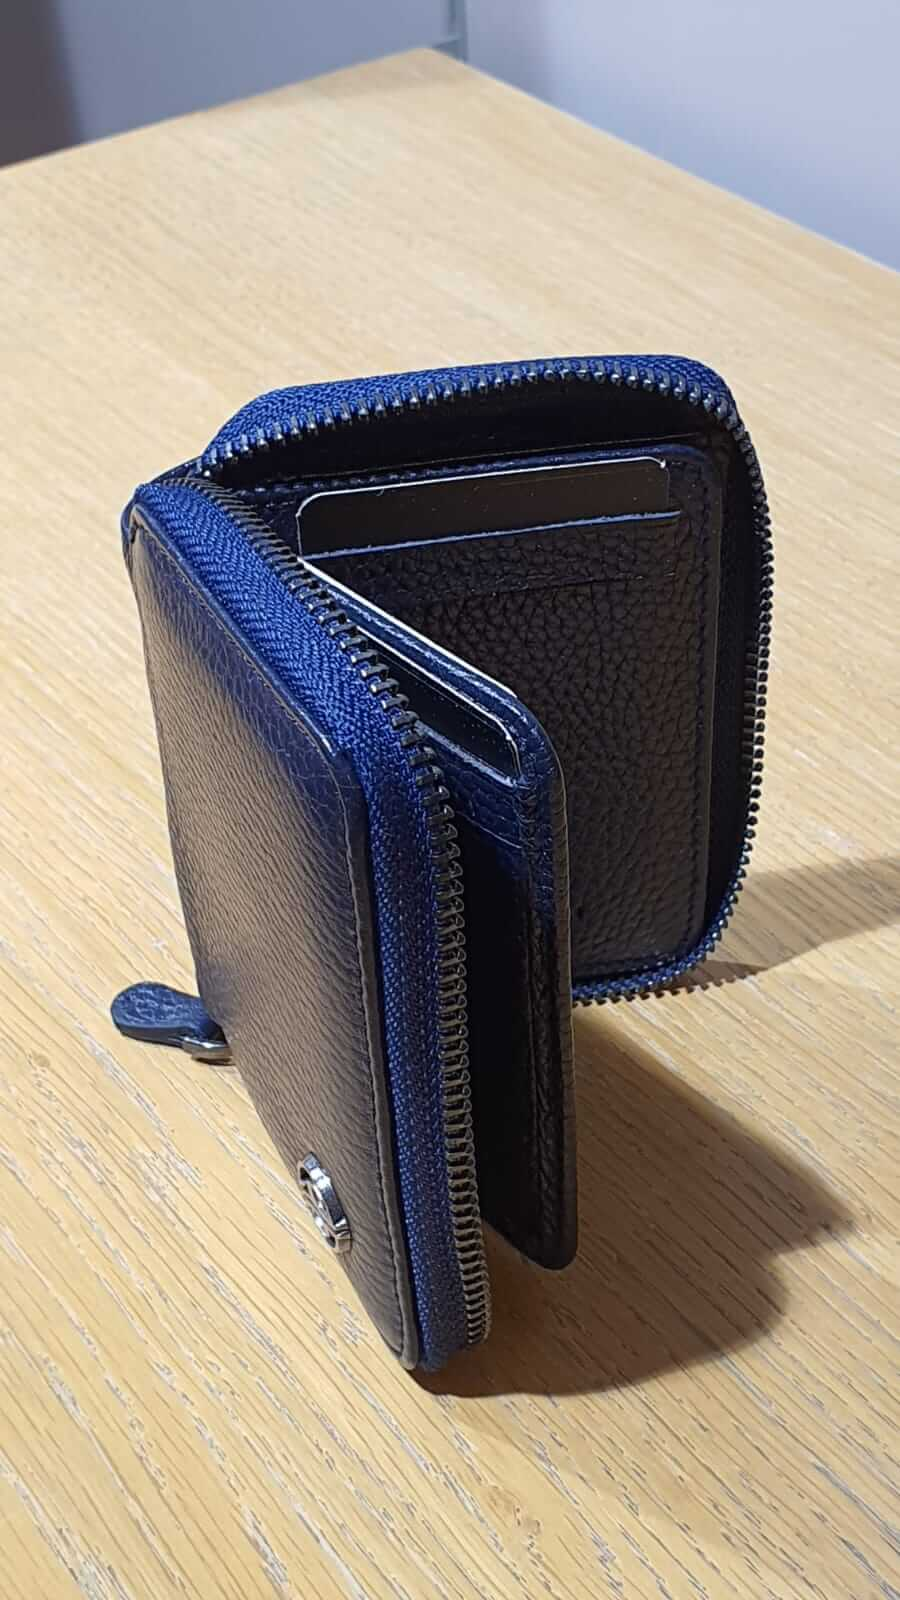 NAVY BLUE CARD WALLET - Hollo Men